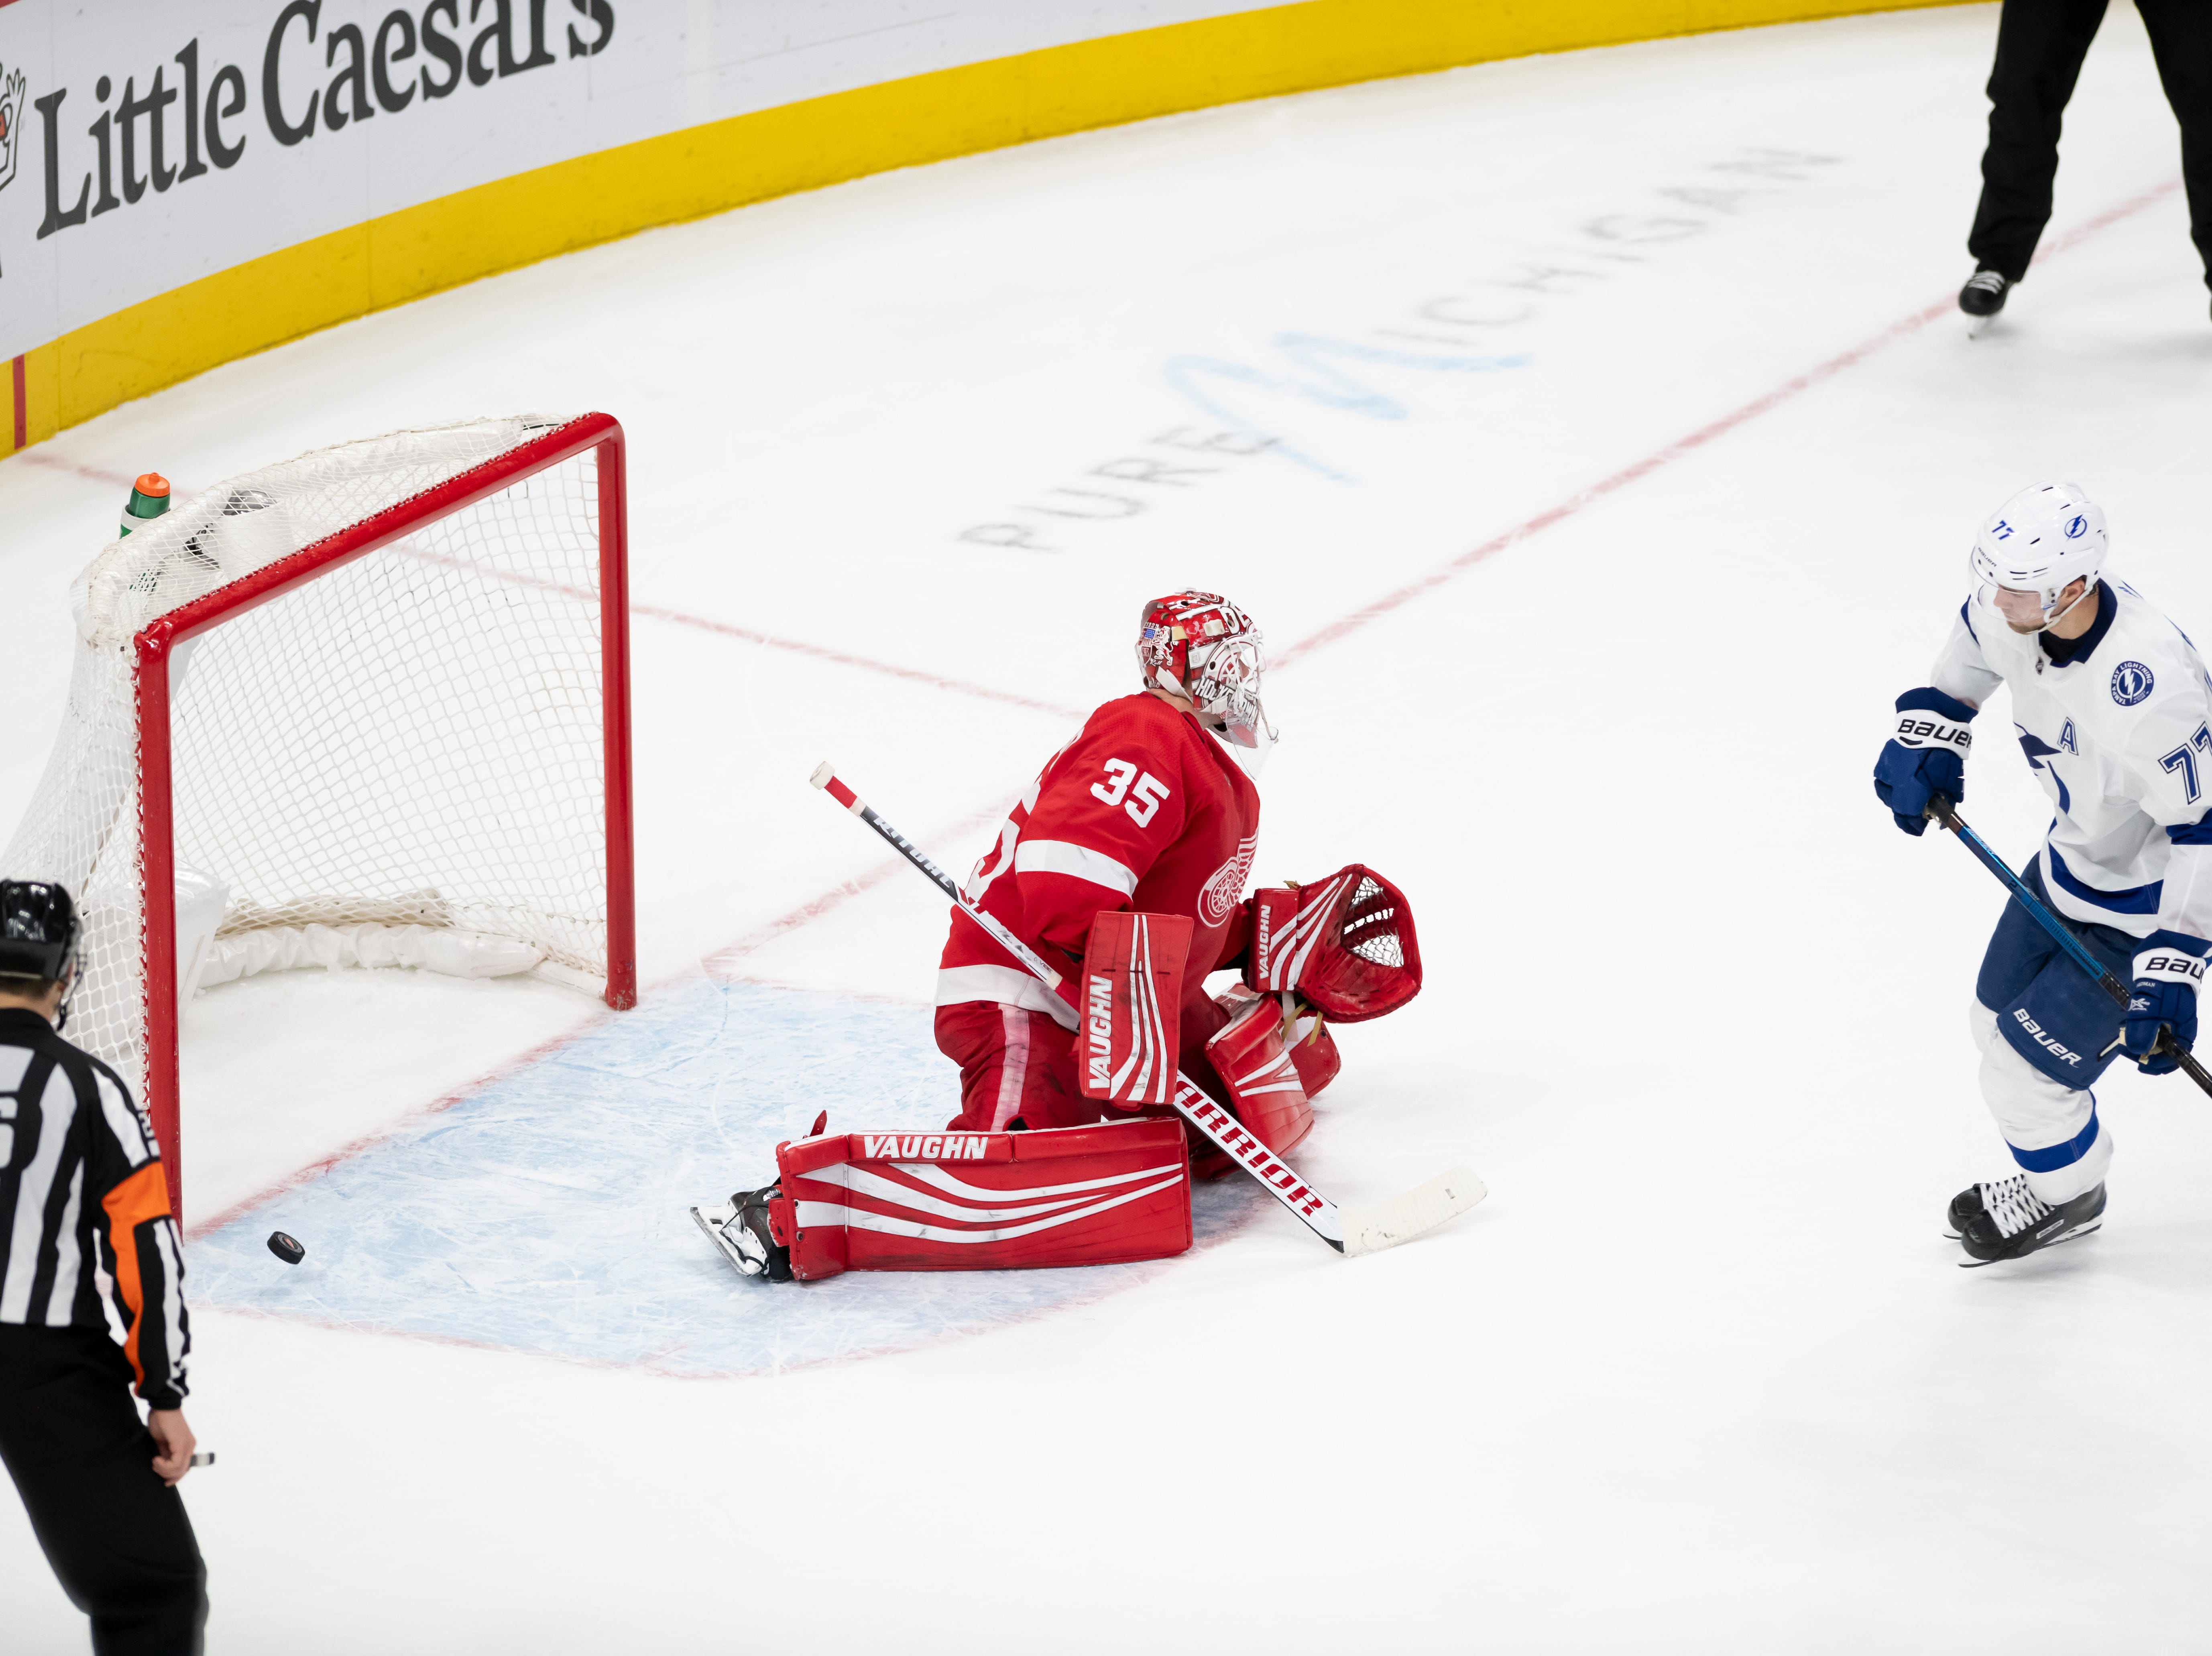 Tampa Bay defenseman Victor Hedman slips the puck past Detroit goaltender Jimmy Howard for a goal during the shoot out.